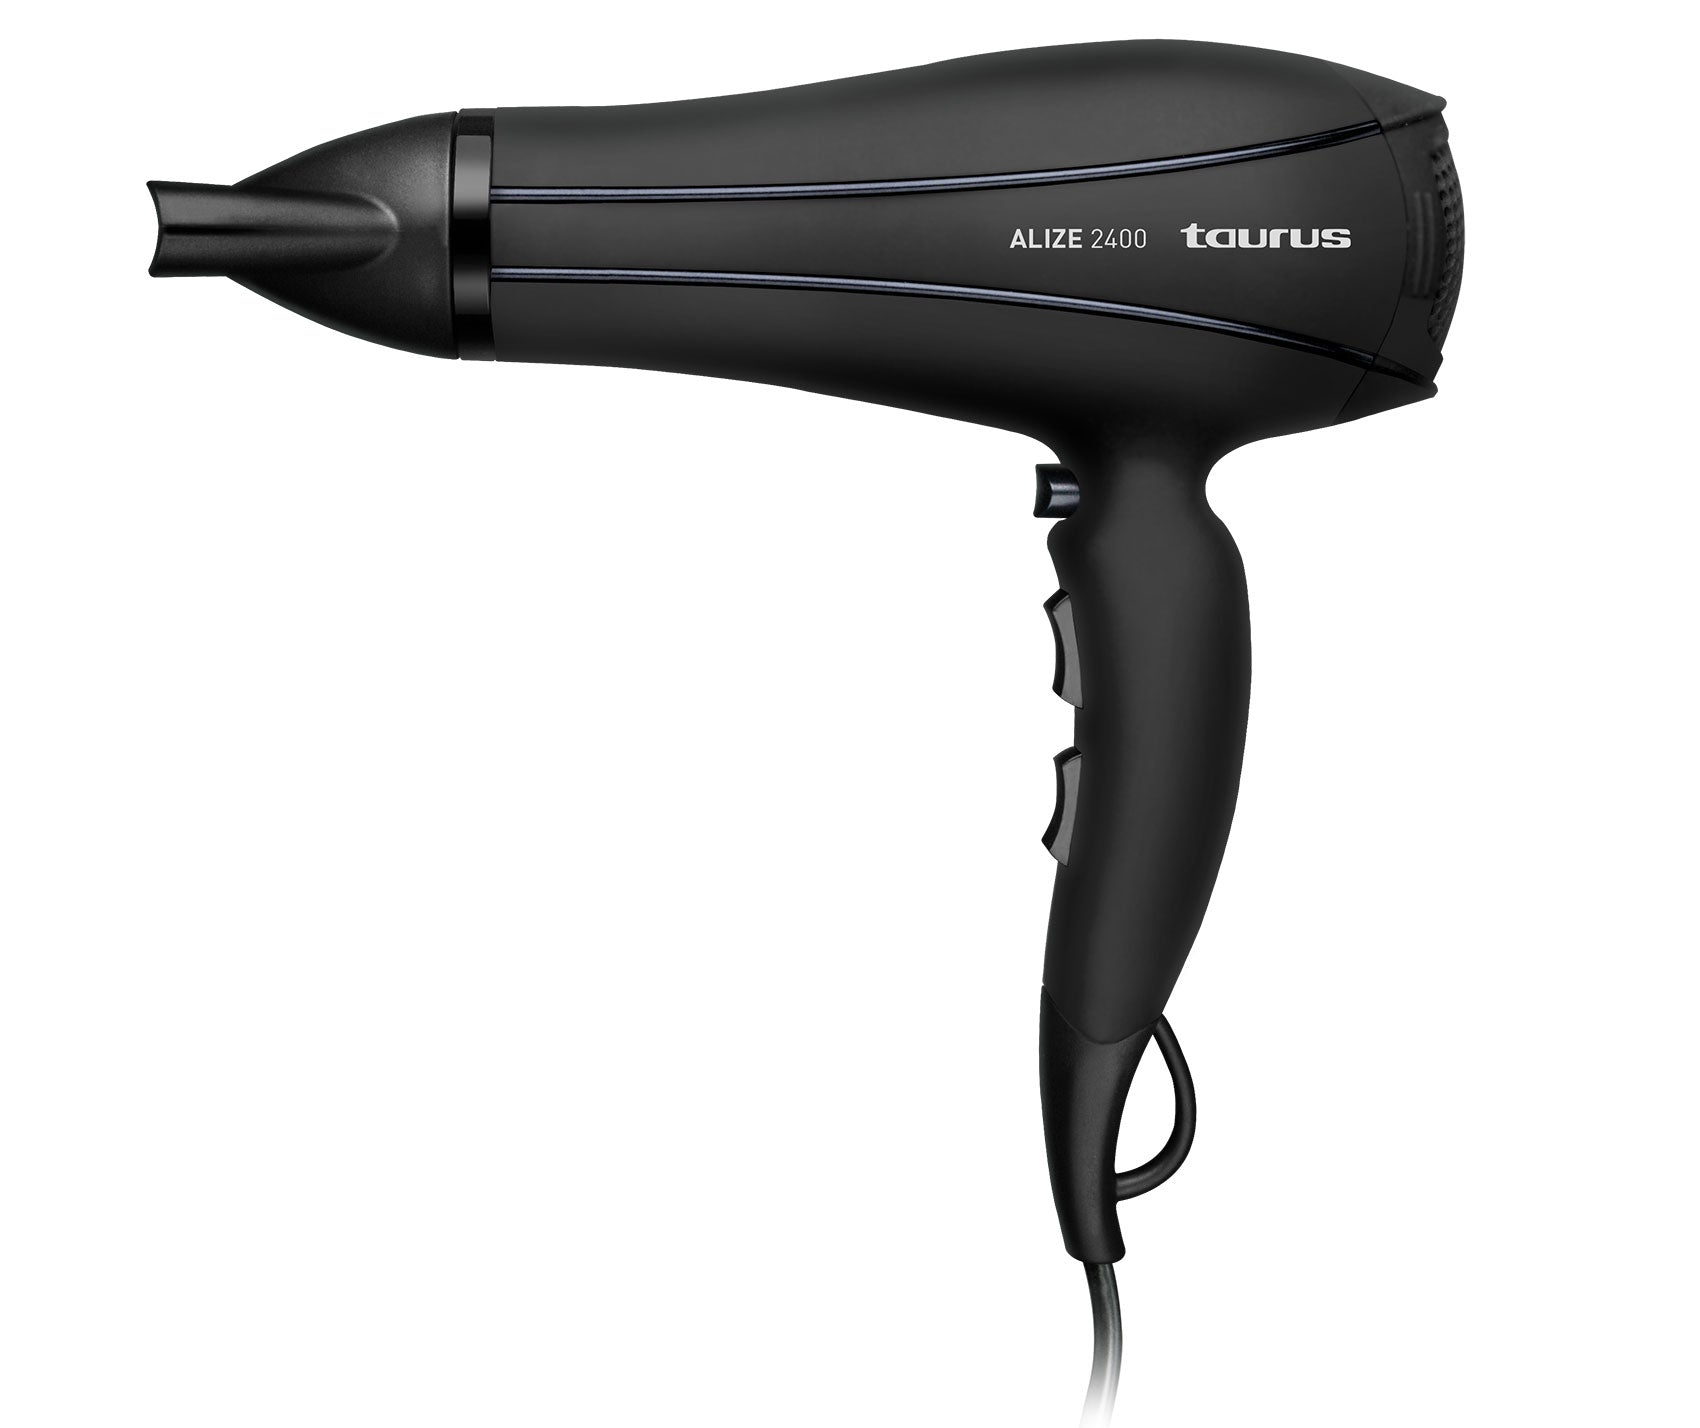 "Taurus Hair Dryer With Diffuser Plastic Black 2400W ""Alize 2400"""